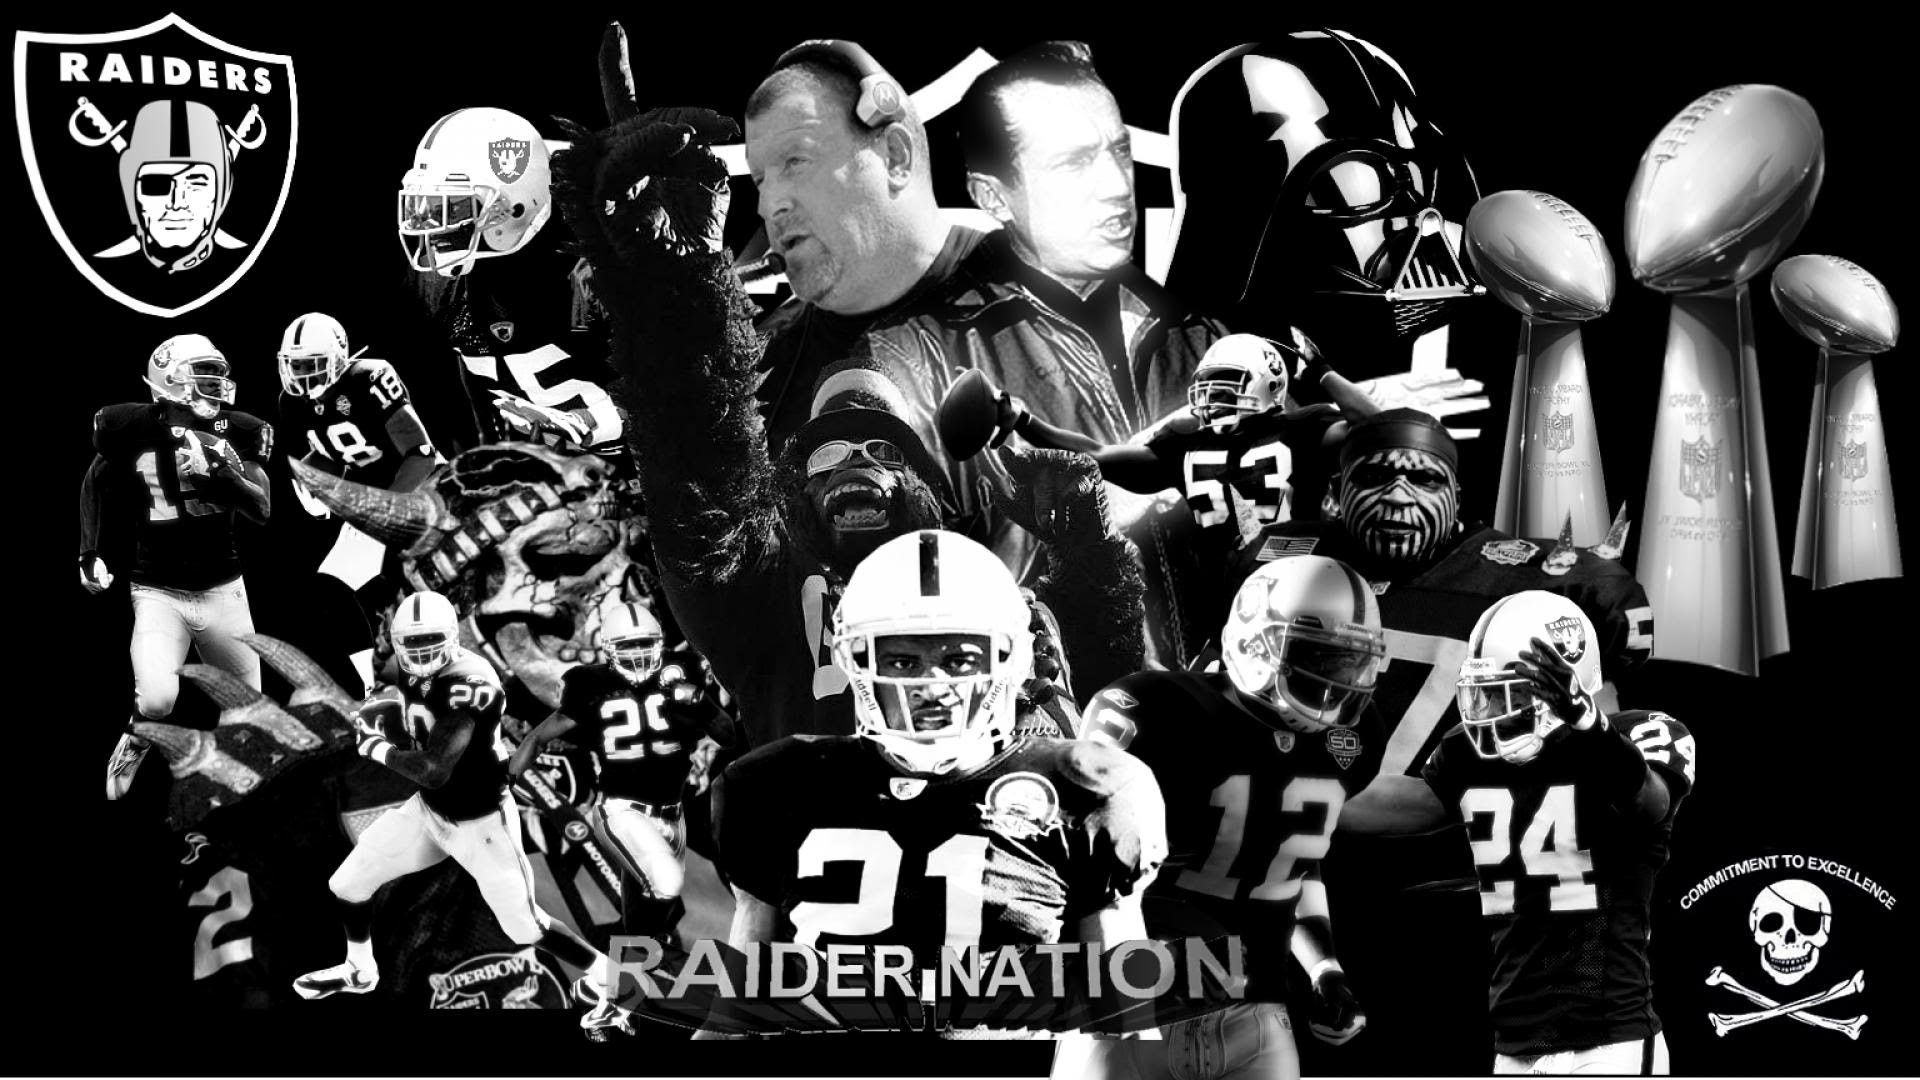 Oakland Raiders Resurgence- The Black And Silver Are Back